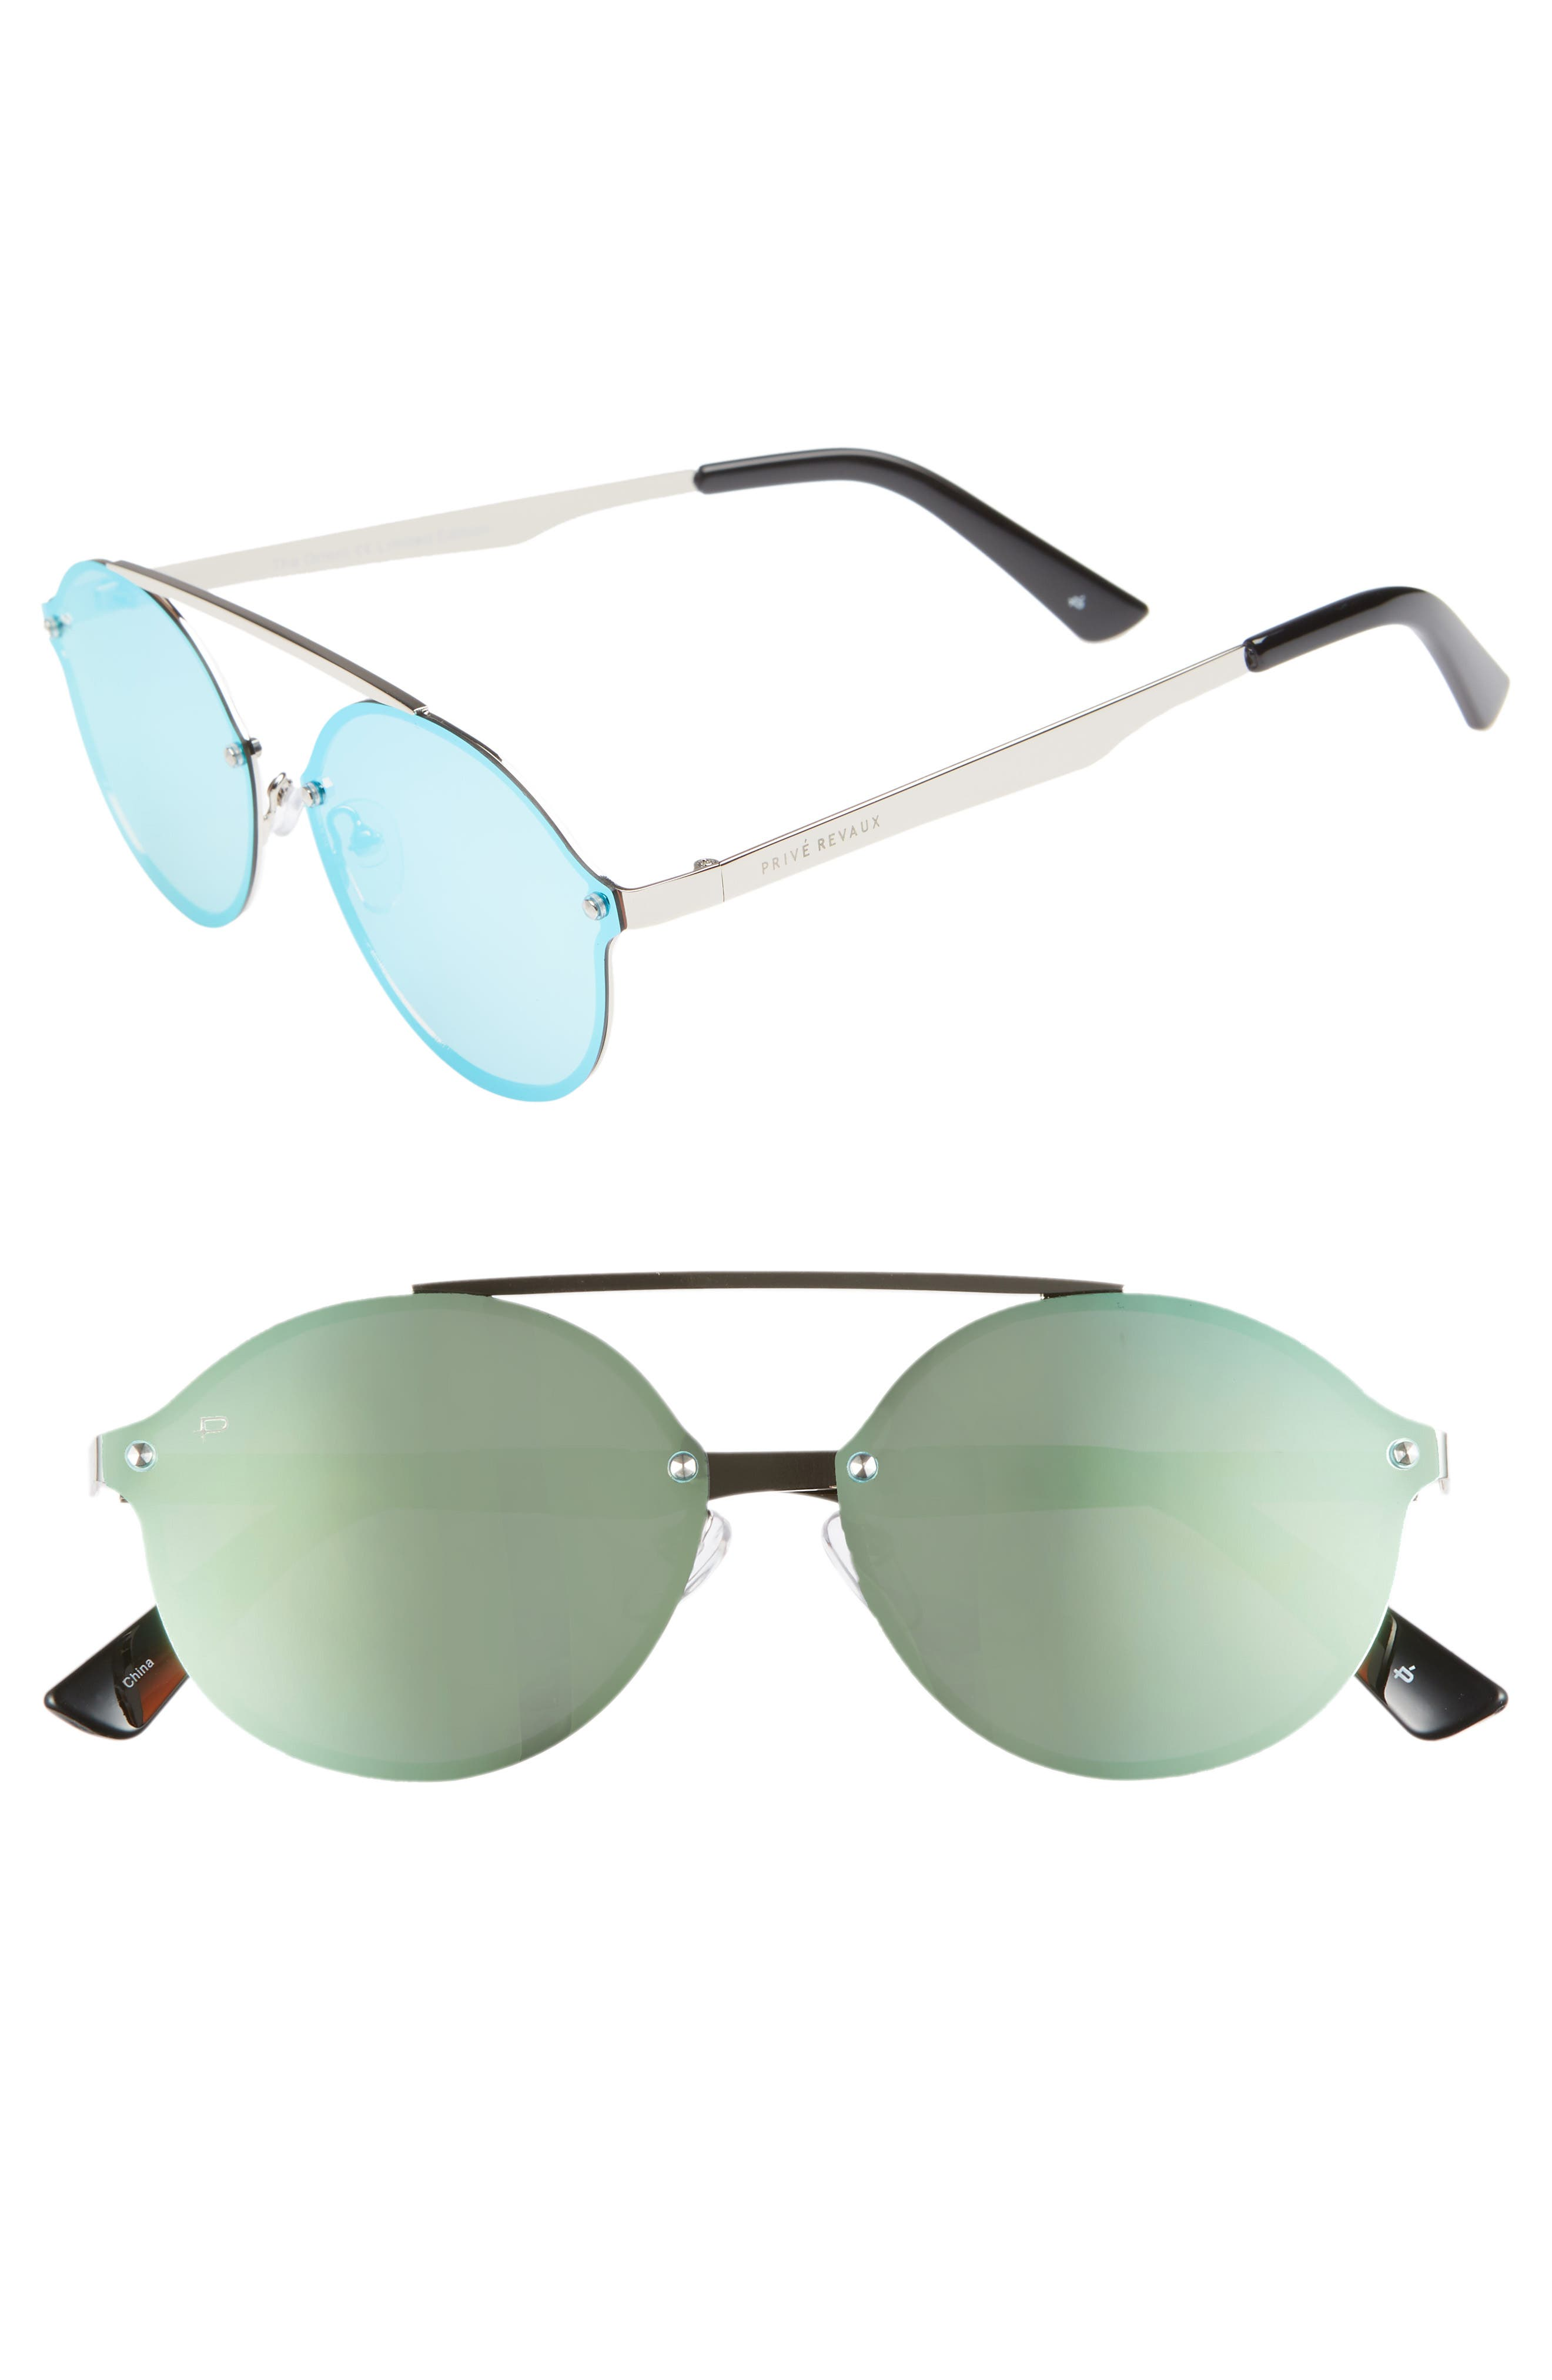 Privé Revaux The Orient 58mm Sunglasses,                         Main,                         color, DARK BLUE MIRROR